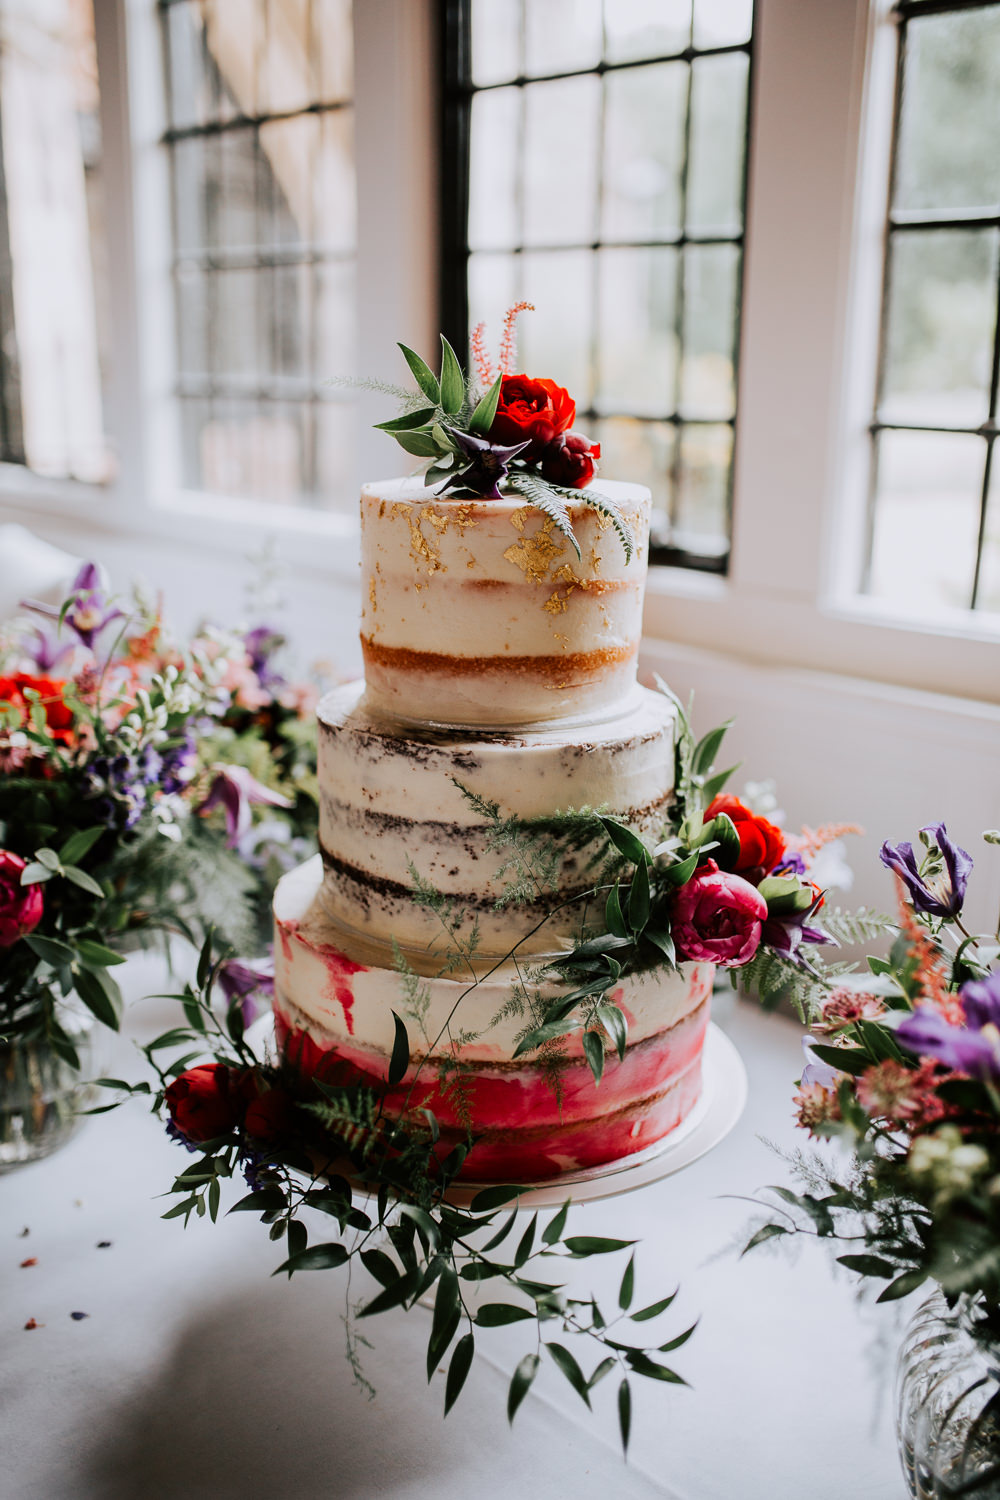 Semi Naked Cake Gold Leaf Flowers Floral Butley Priory Wedding Sally Rawlins Photography